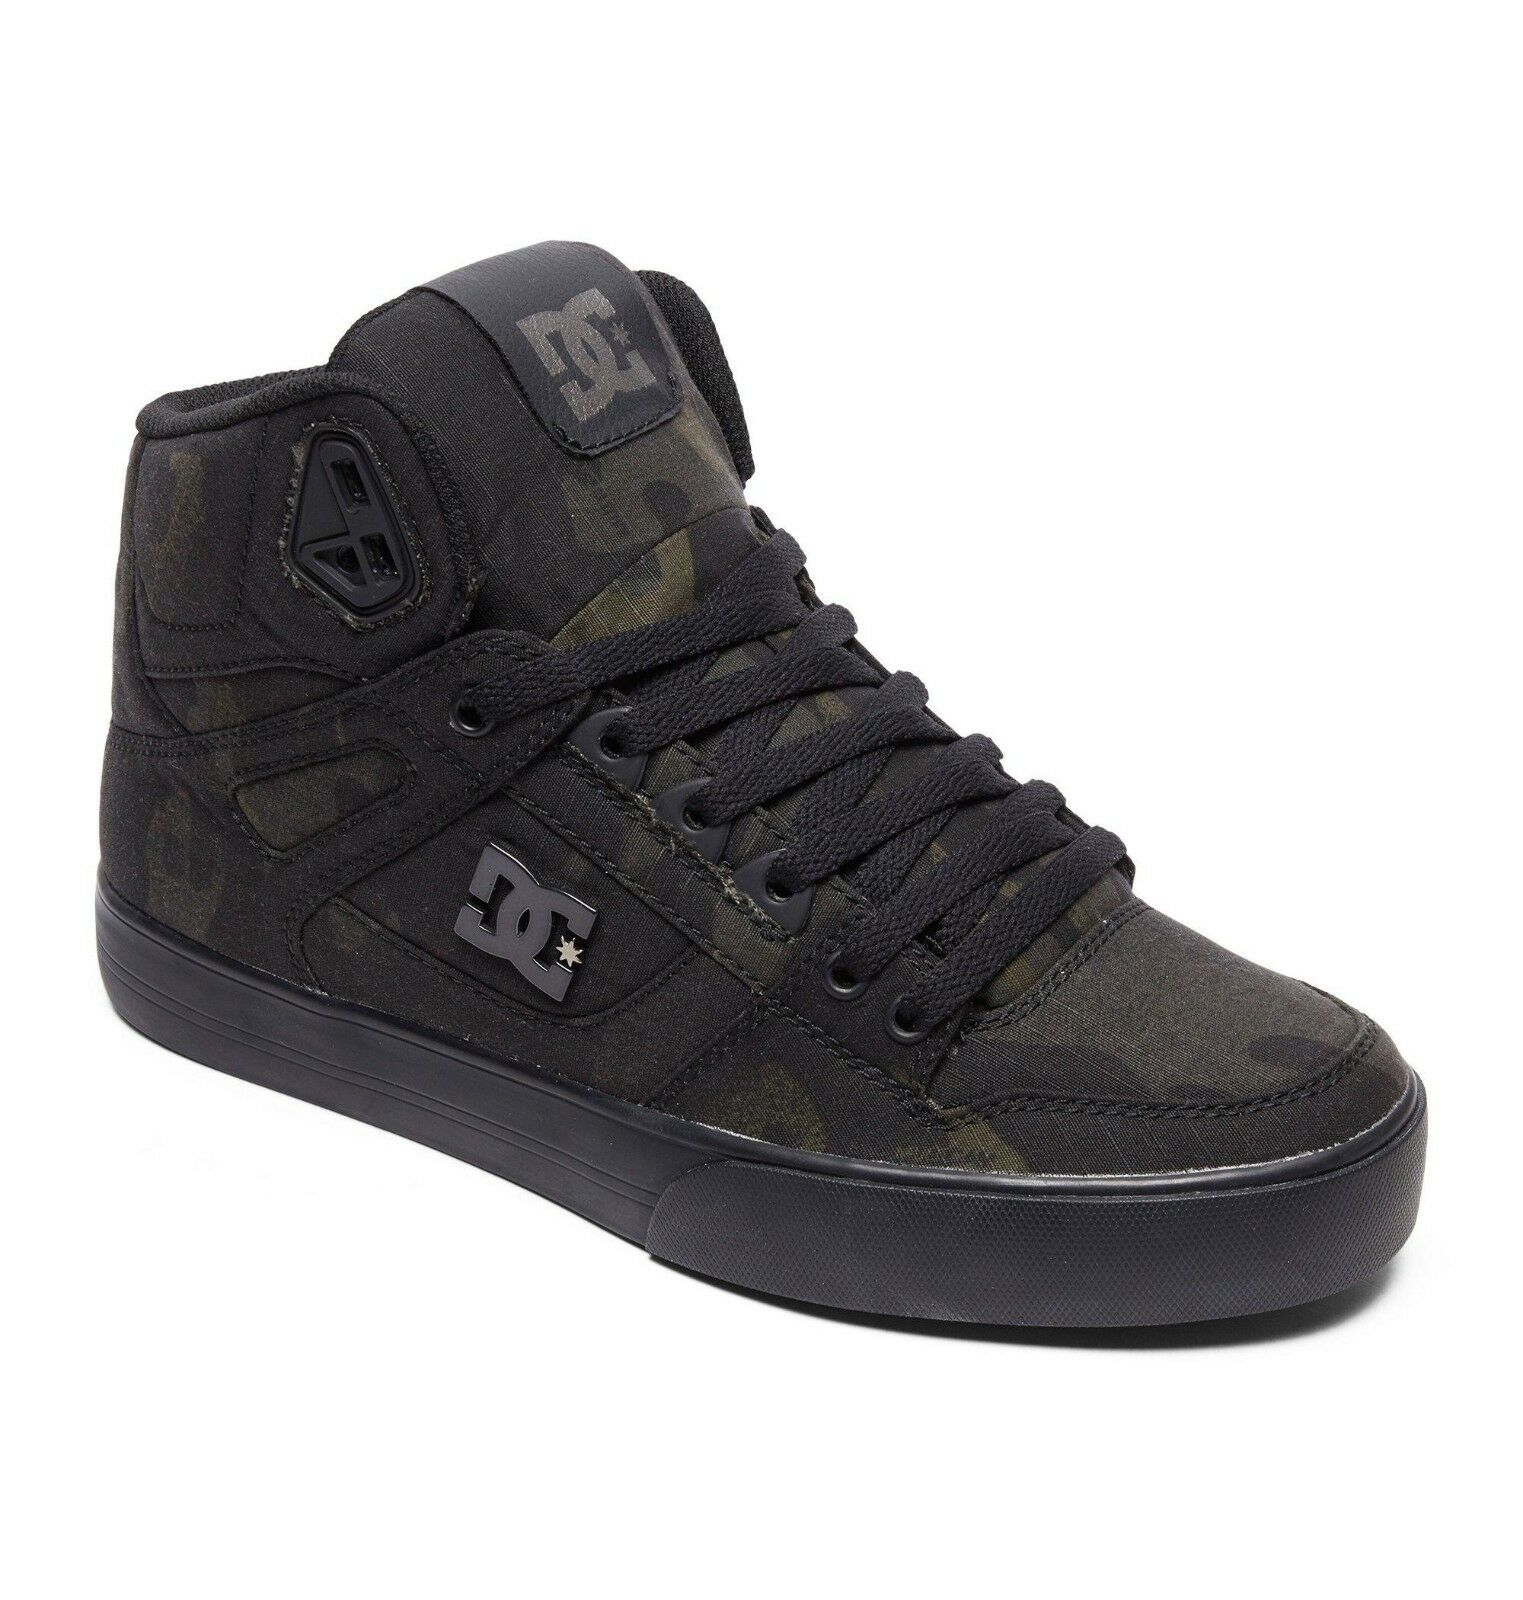 DC SHOES PURE HIGH TOP TXSE CAMO ADYS400046 CMO MENS UK SIZES 8 - 11